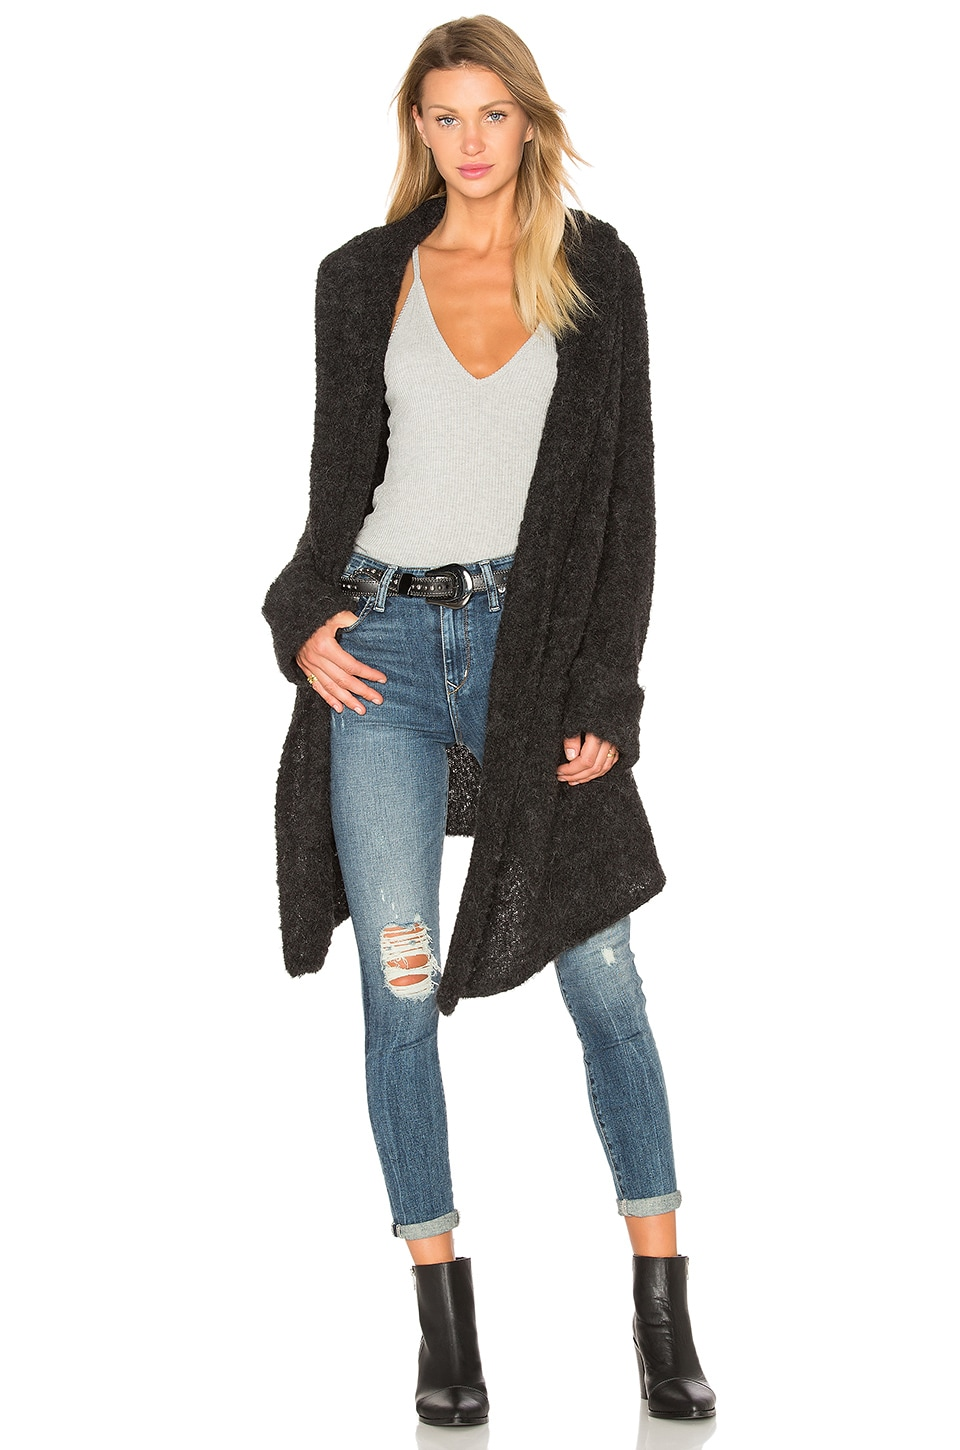 360 Sweater Athena Cashmere Cardigan in Charcoal